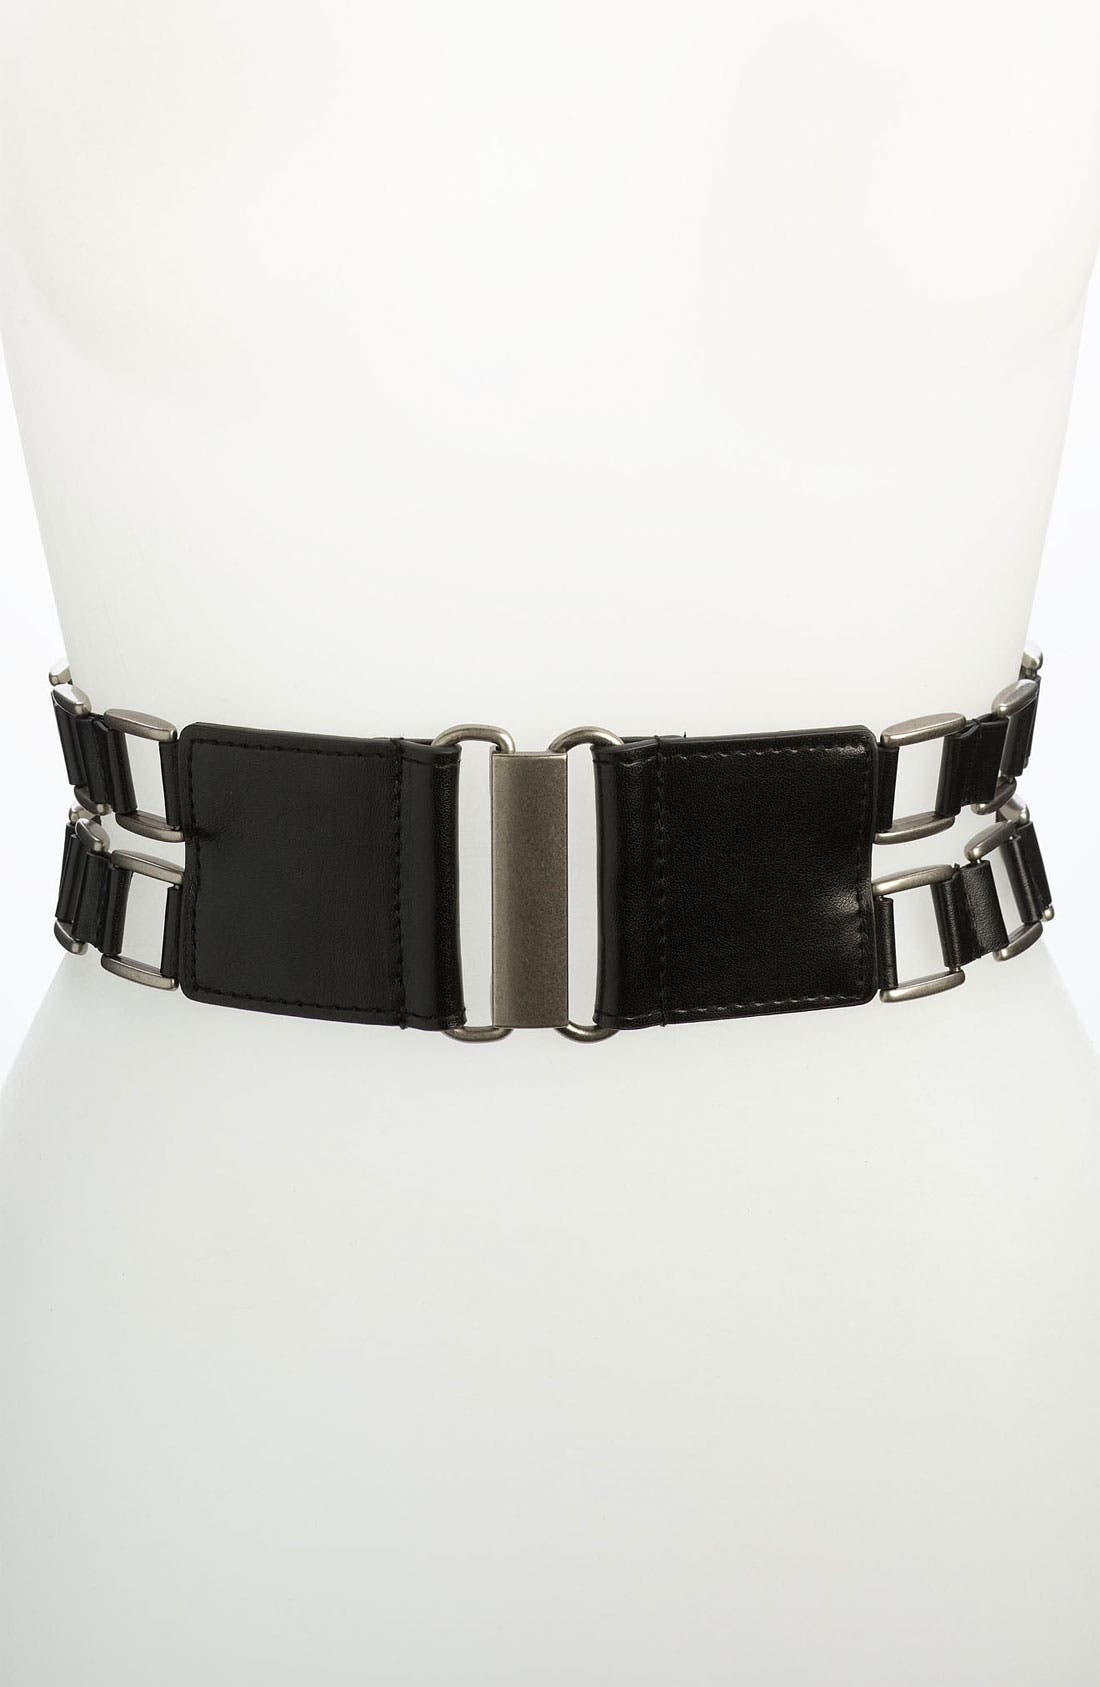 Main Image - Belgo Lux Stretch Belt